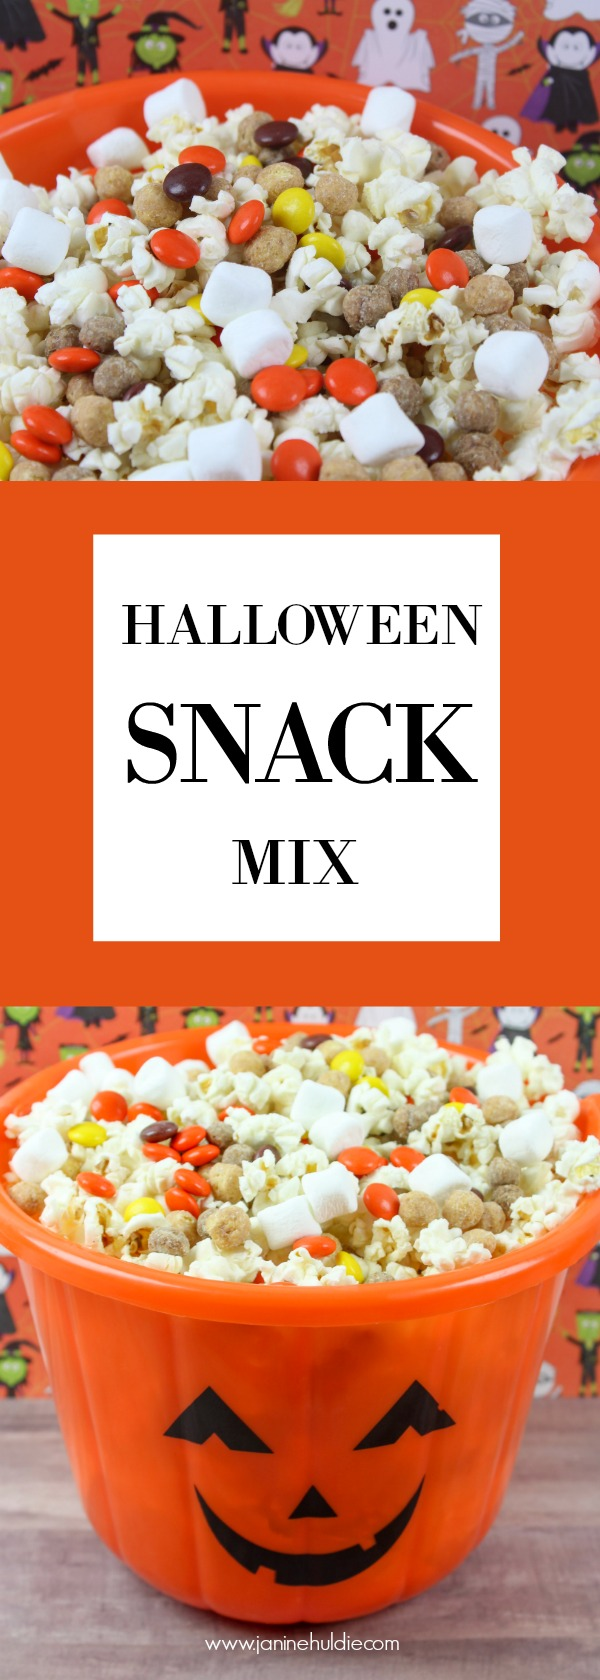 Halloween Snack Mix Long Pin